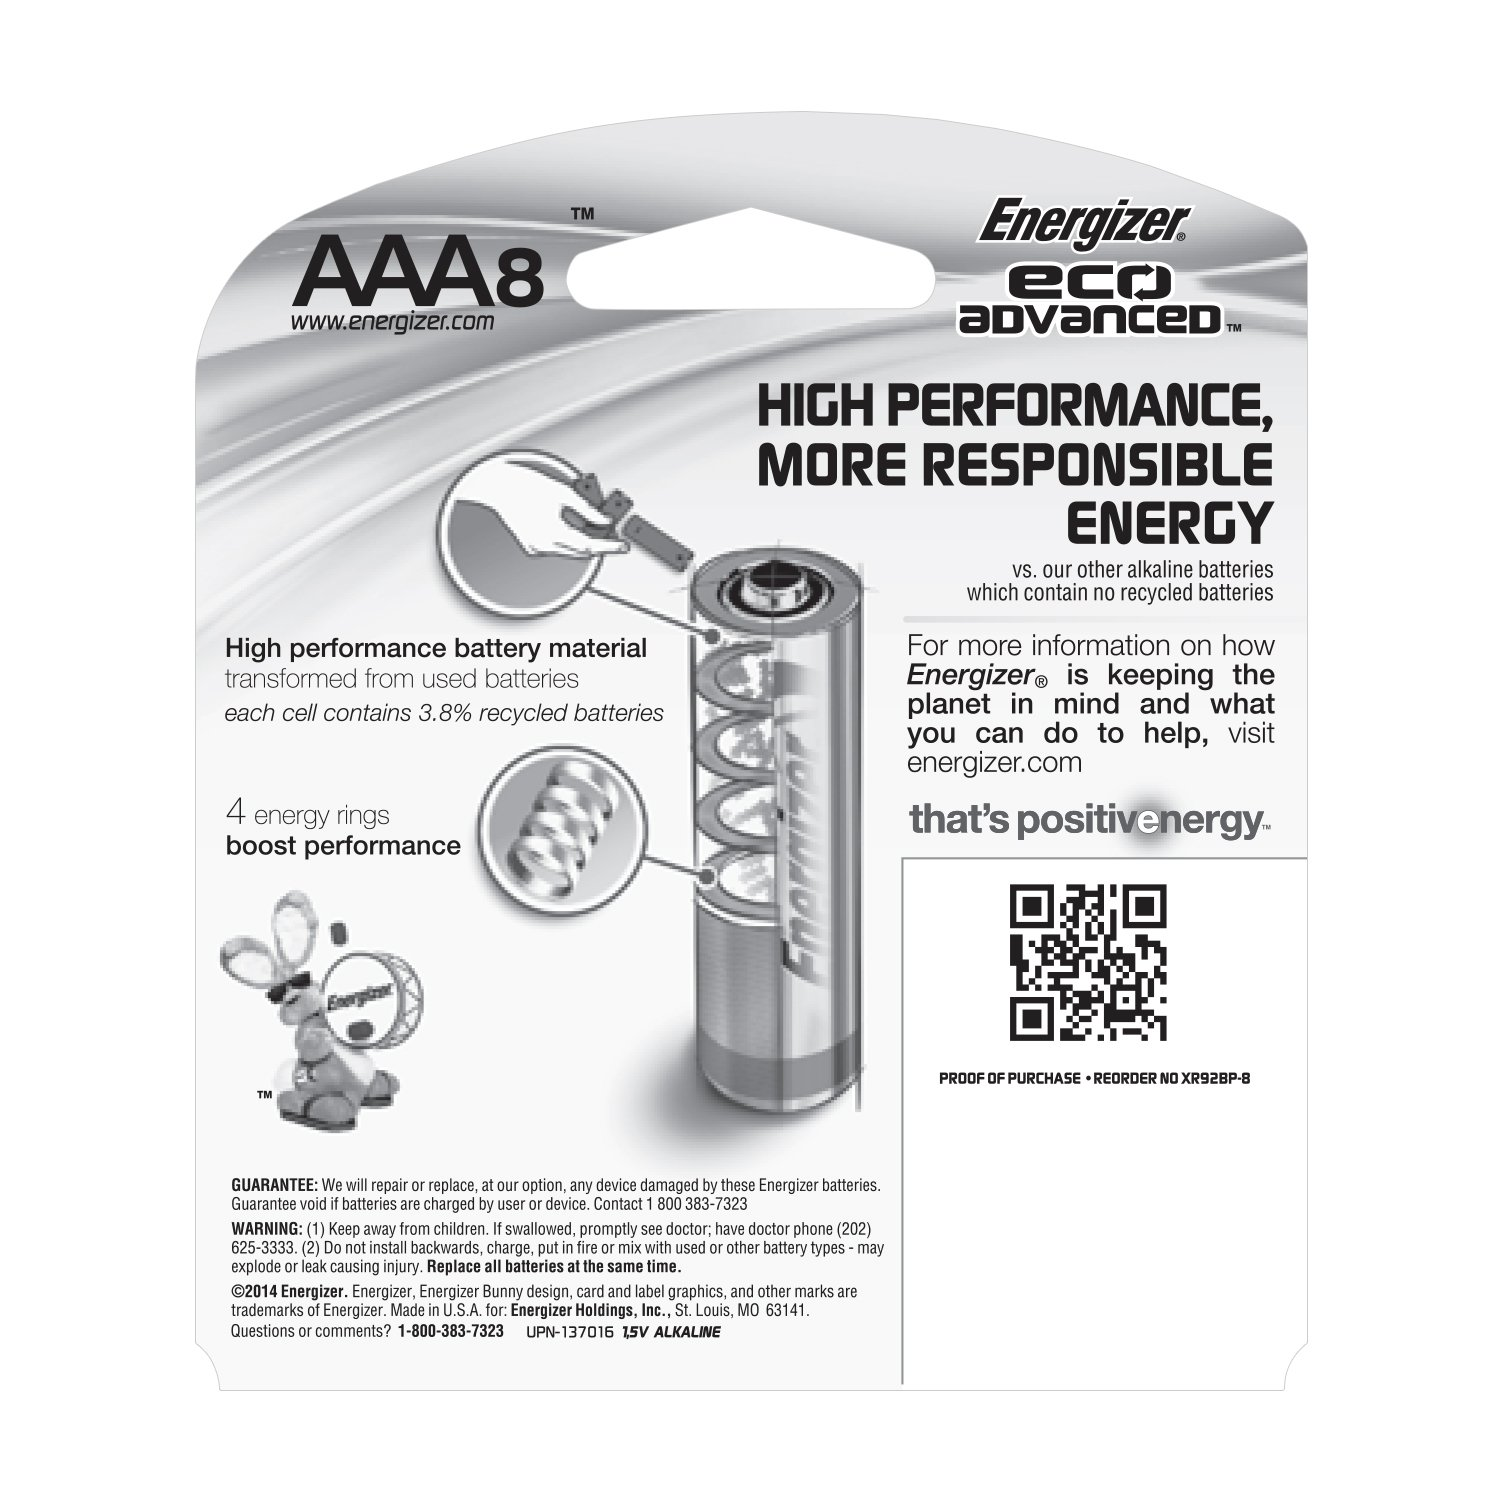 Energizer Ecoadvanced Aaa Batteries Energizers Longest Lasting Alkaline 8 Pack Battery Diagram Of Leaving The Two Health Personal Care